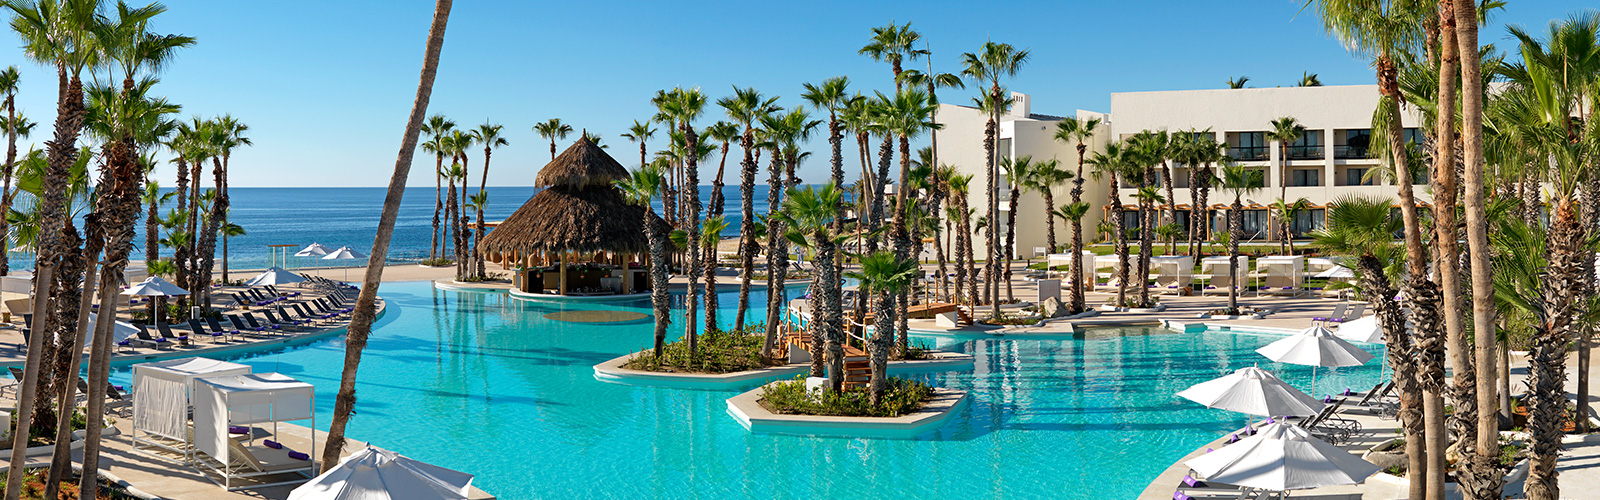 Paradisus Los Cabos pool and palm trees overlooking ocean